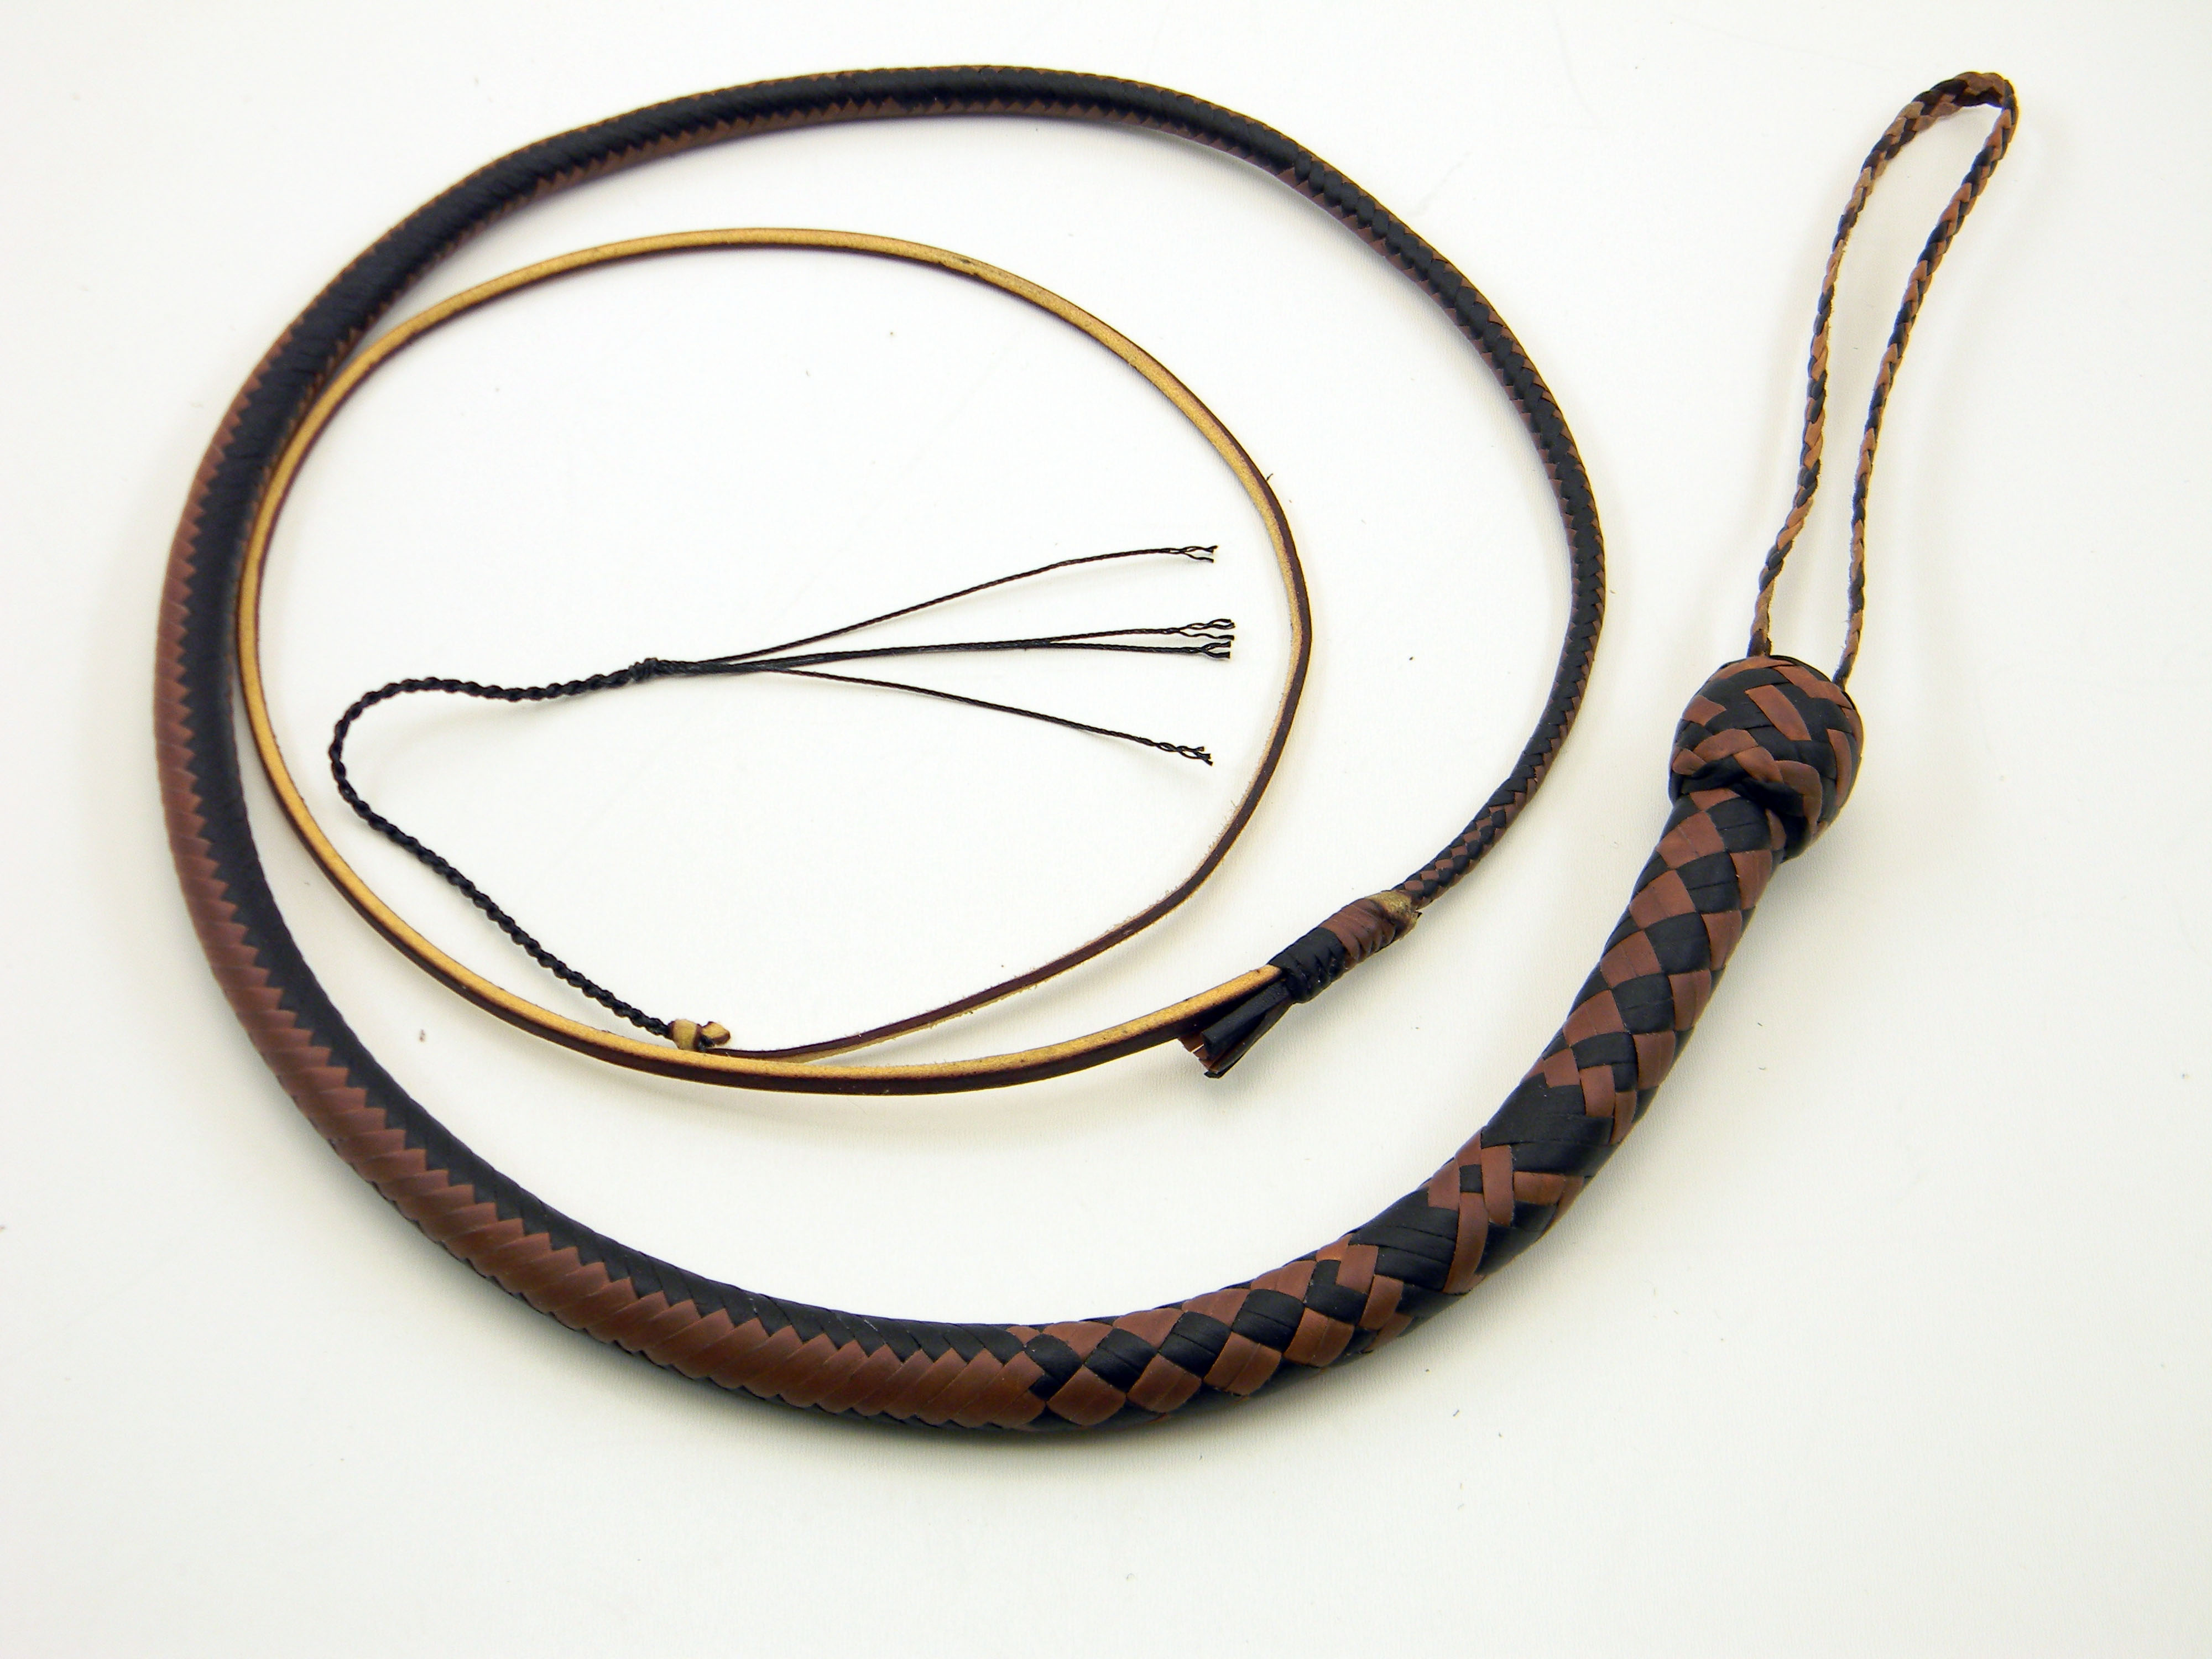 3ft Brandy and Natural 16 Plait Snake Whip